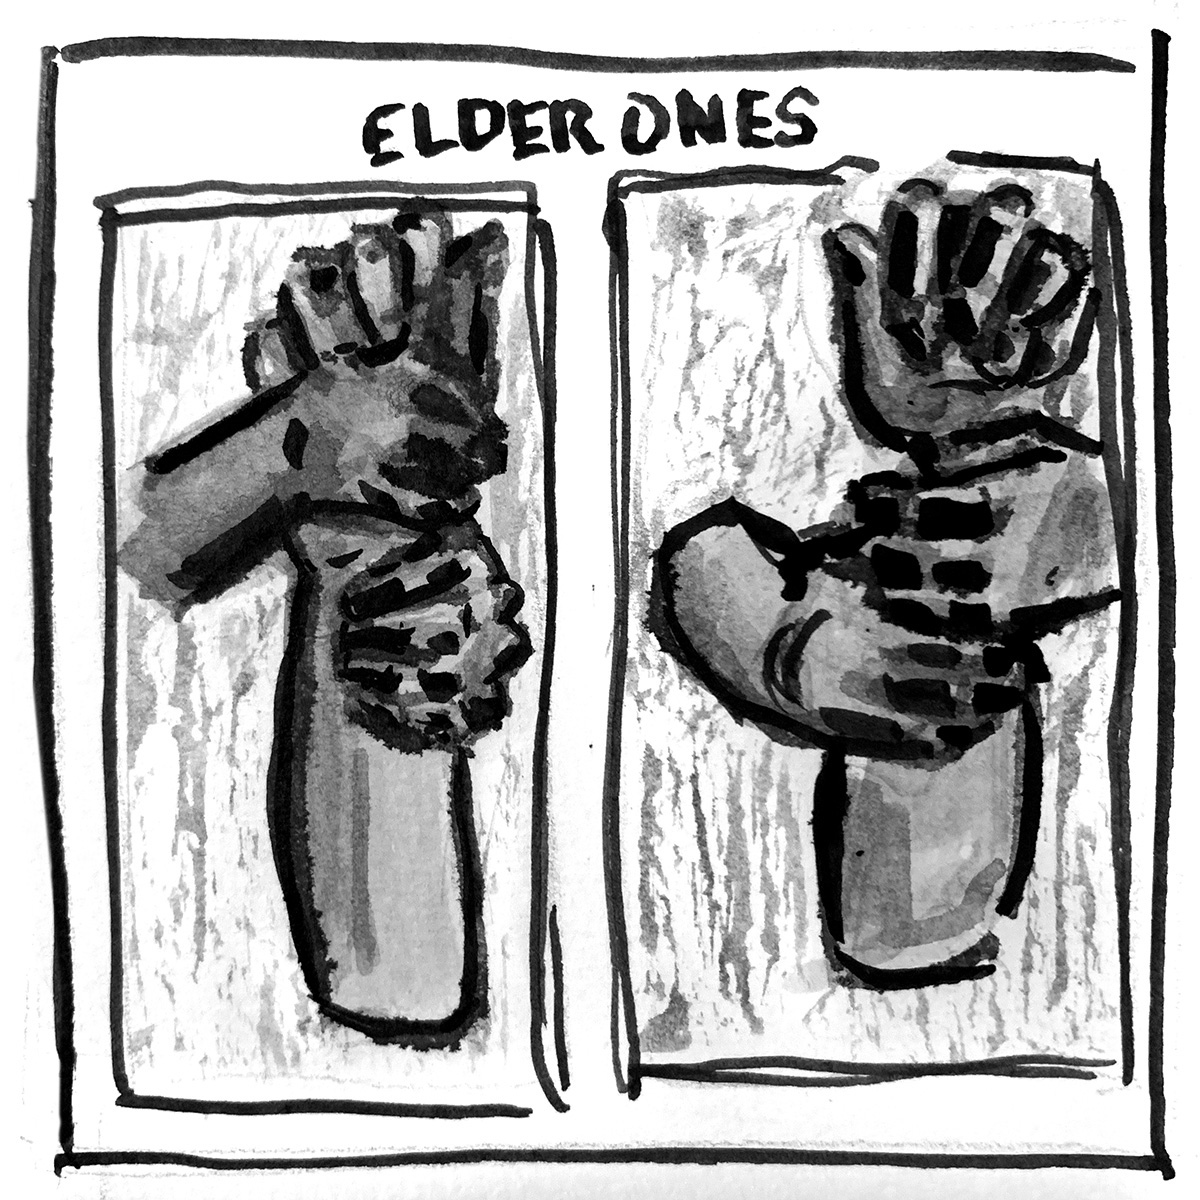 Elder Ones From Untruth